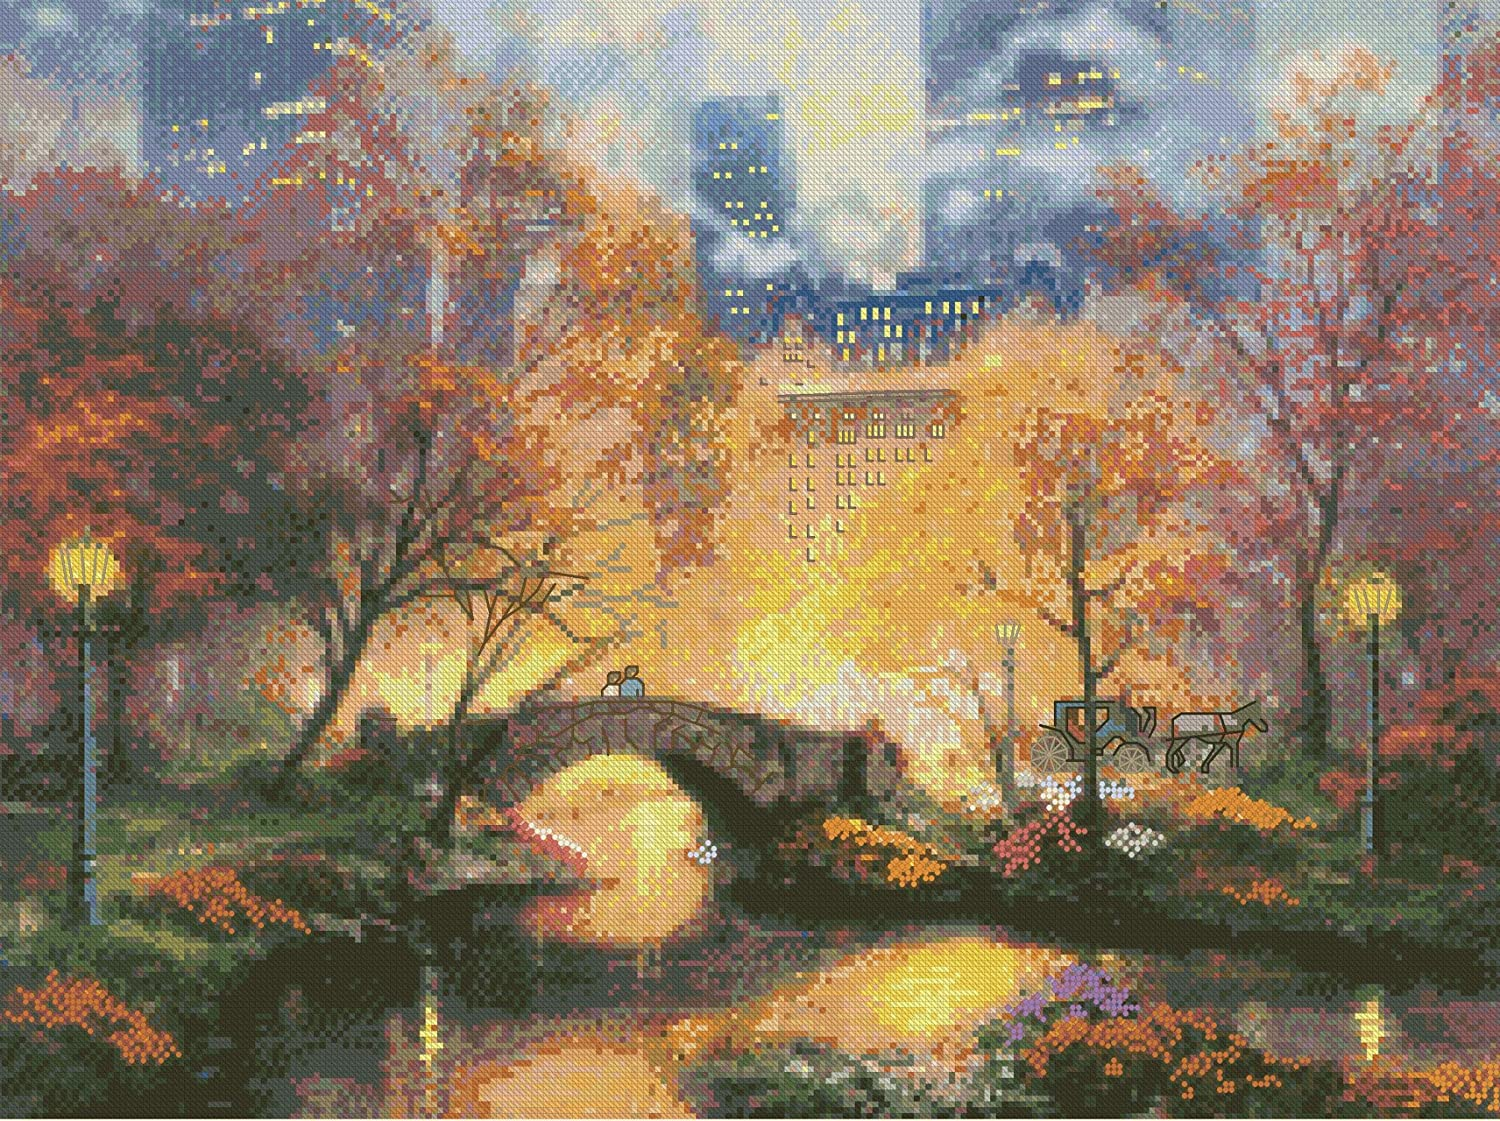 Thomas Kinkade Central Park Counted Cross Stitch Kit-16